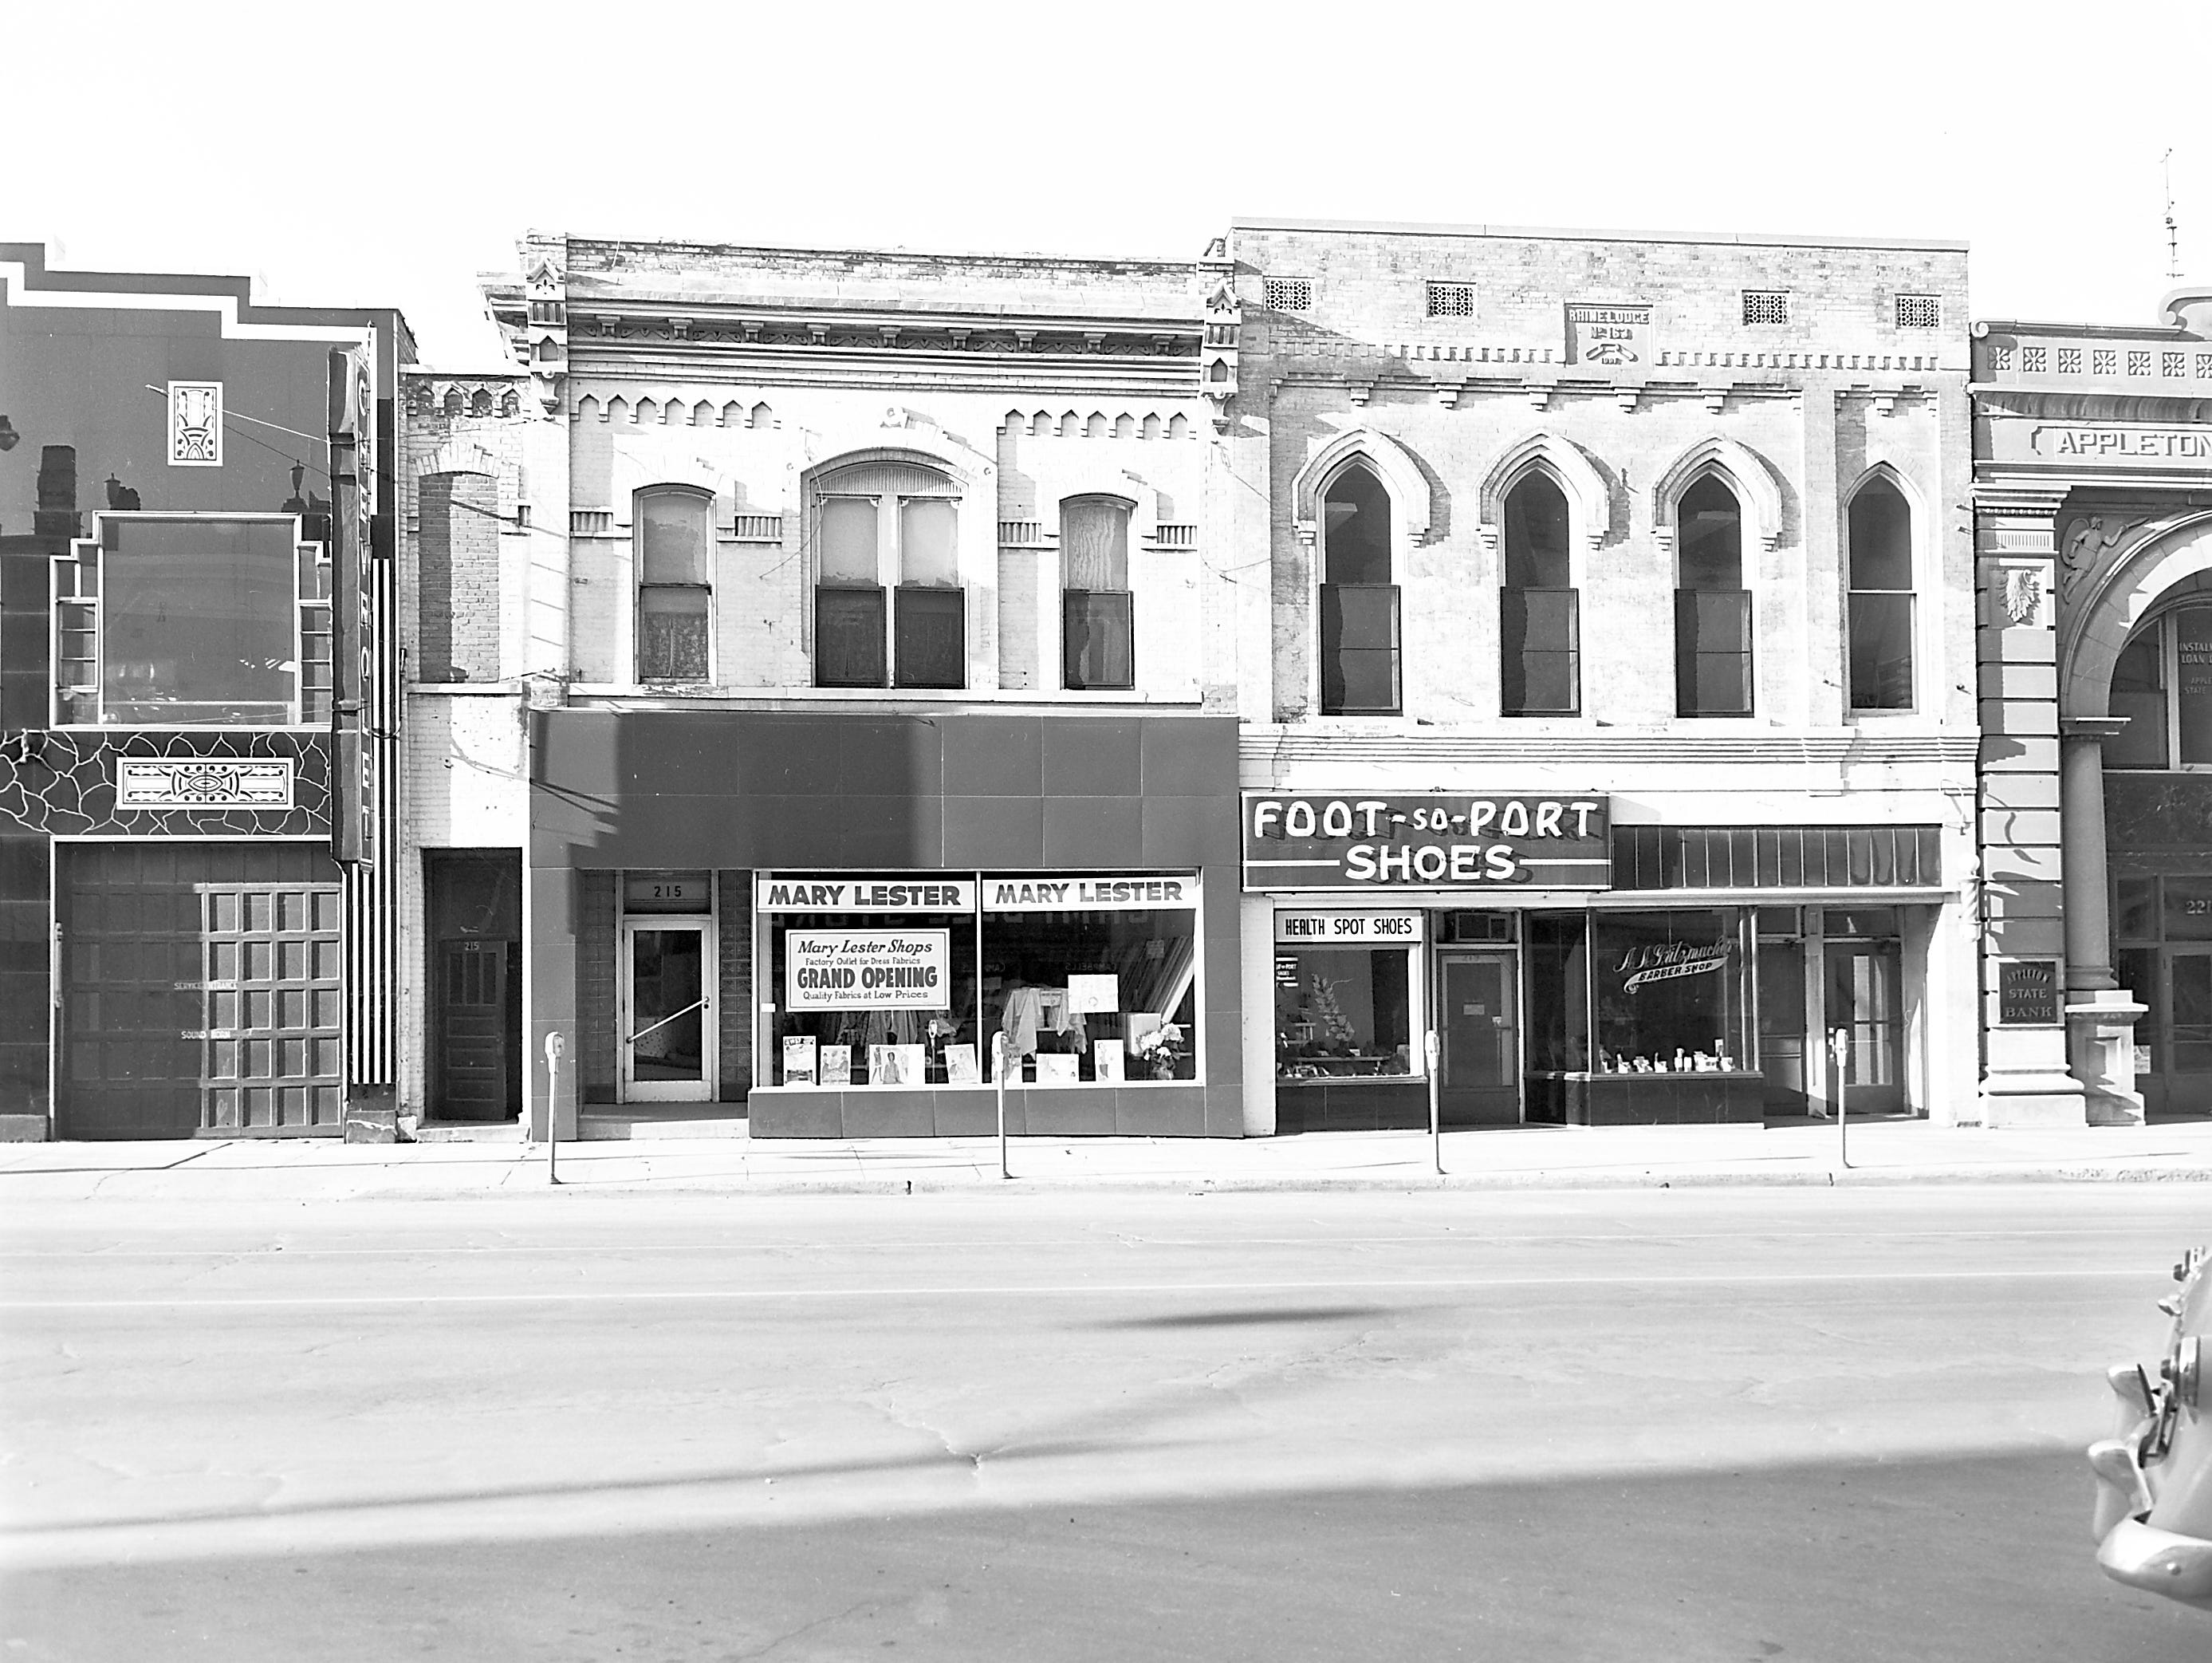 1957 Downtown Appleton. 200 West block on the south side of College Avenue: Gibson Motor's. Mary Lester Shop. Foot-so-Port Shoes. Barber shop. Appleton State Bank. Post-Crescent photo by staff